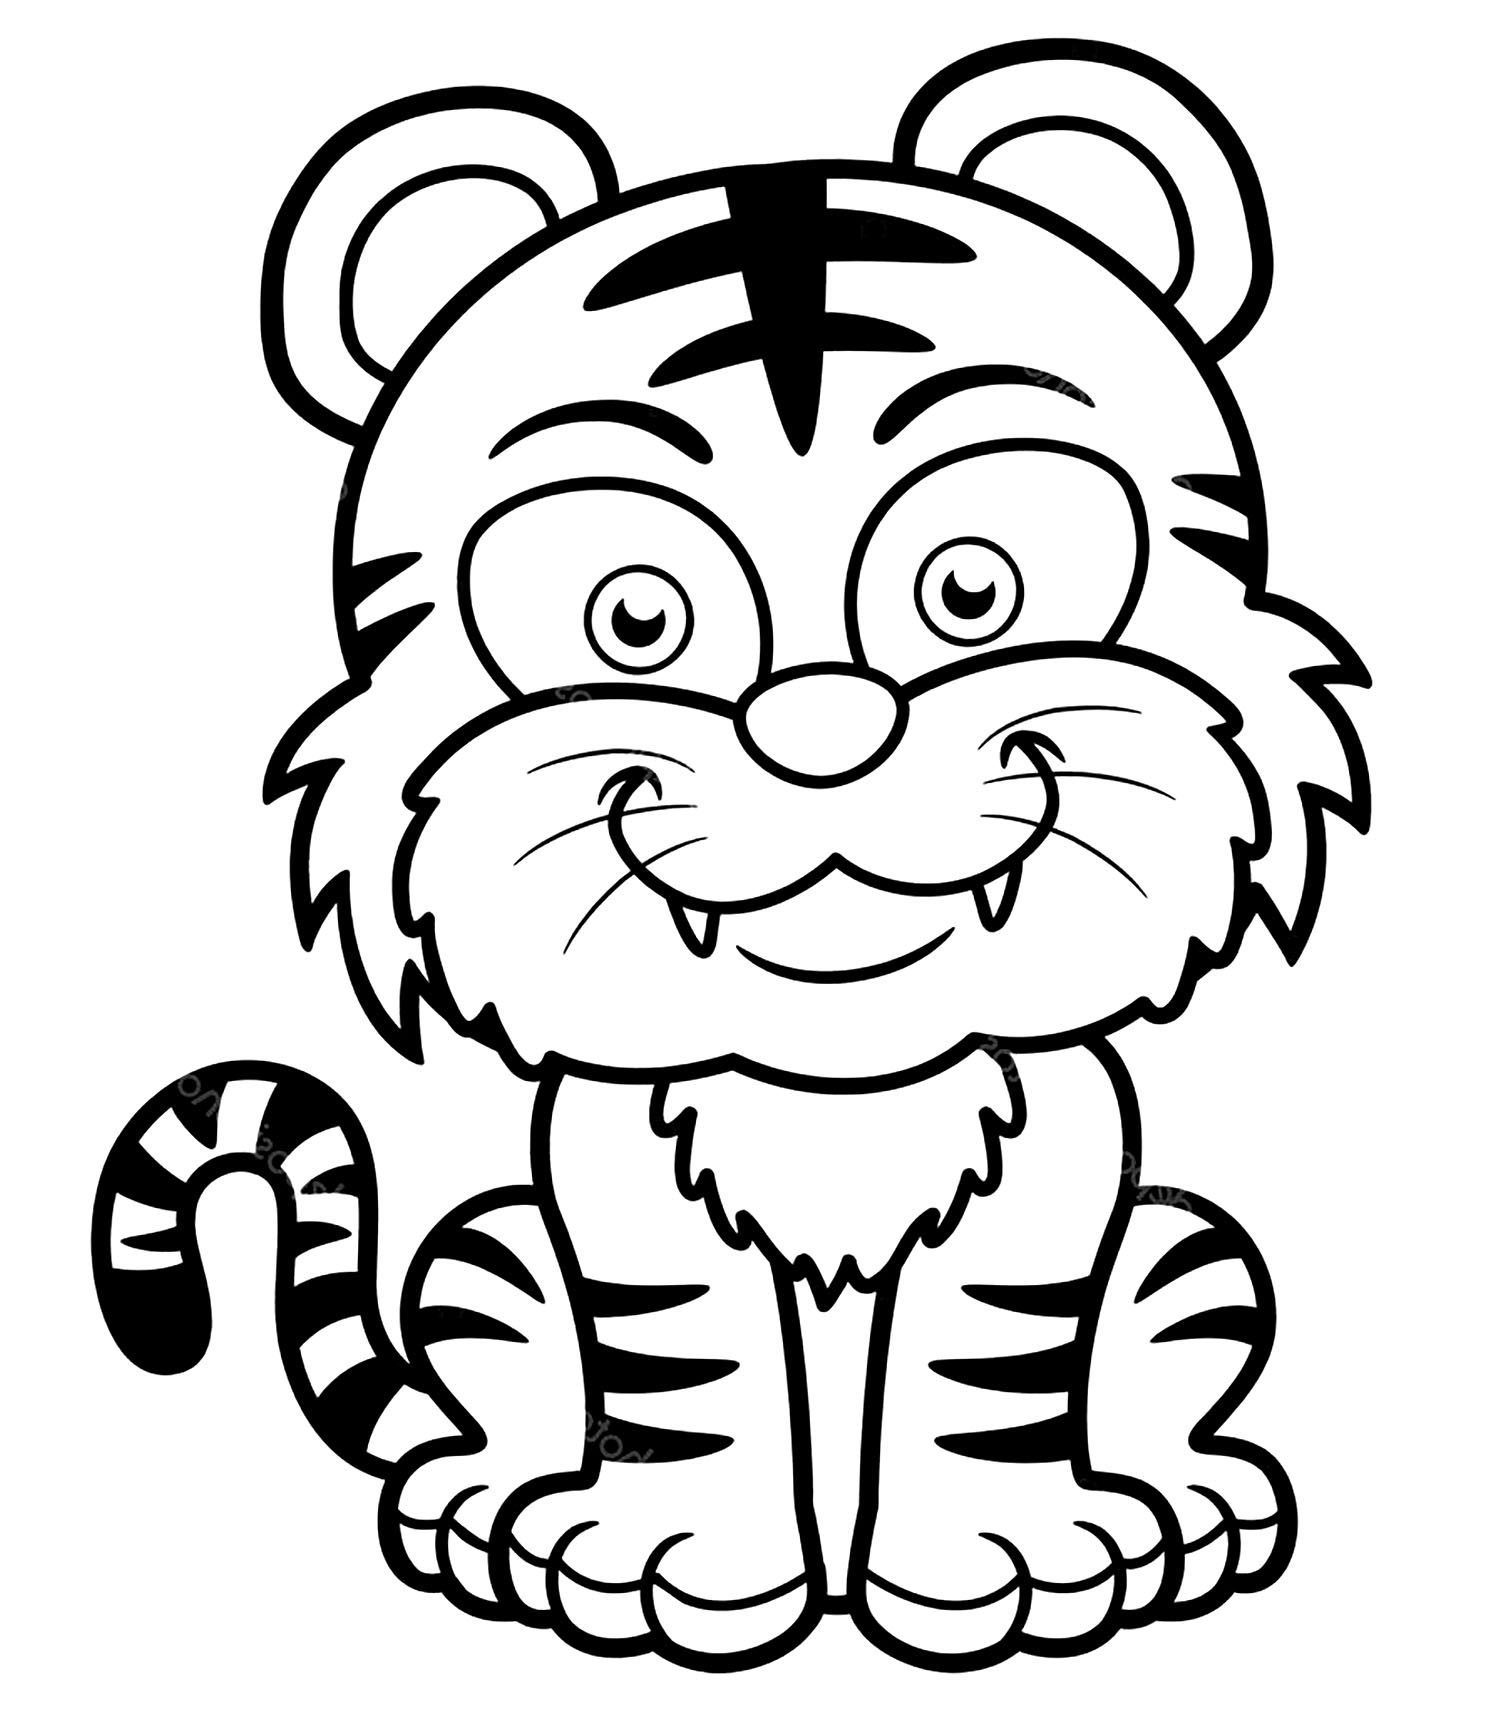 Funny free Tigers coloring page to print and color